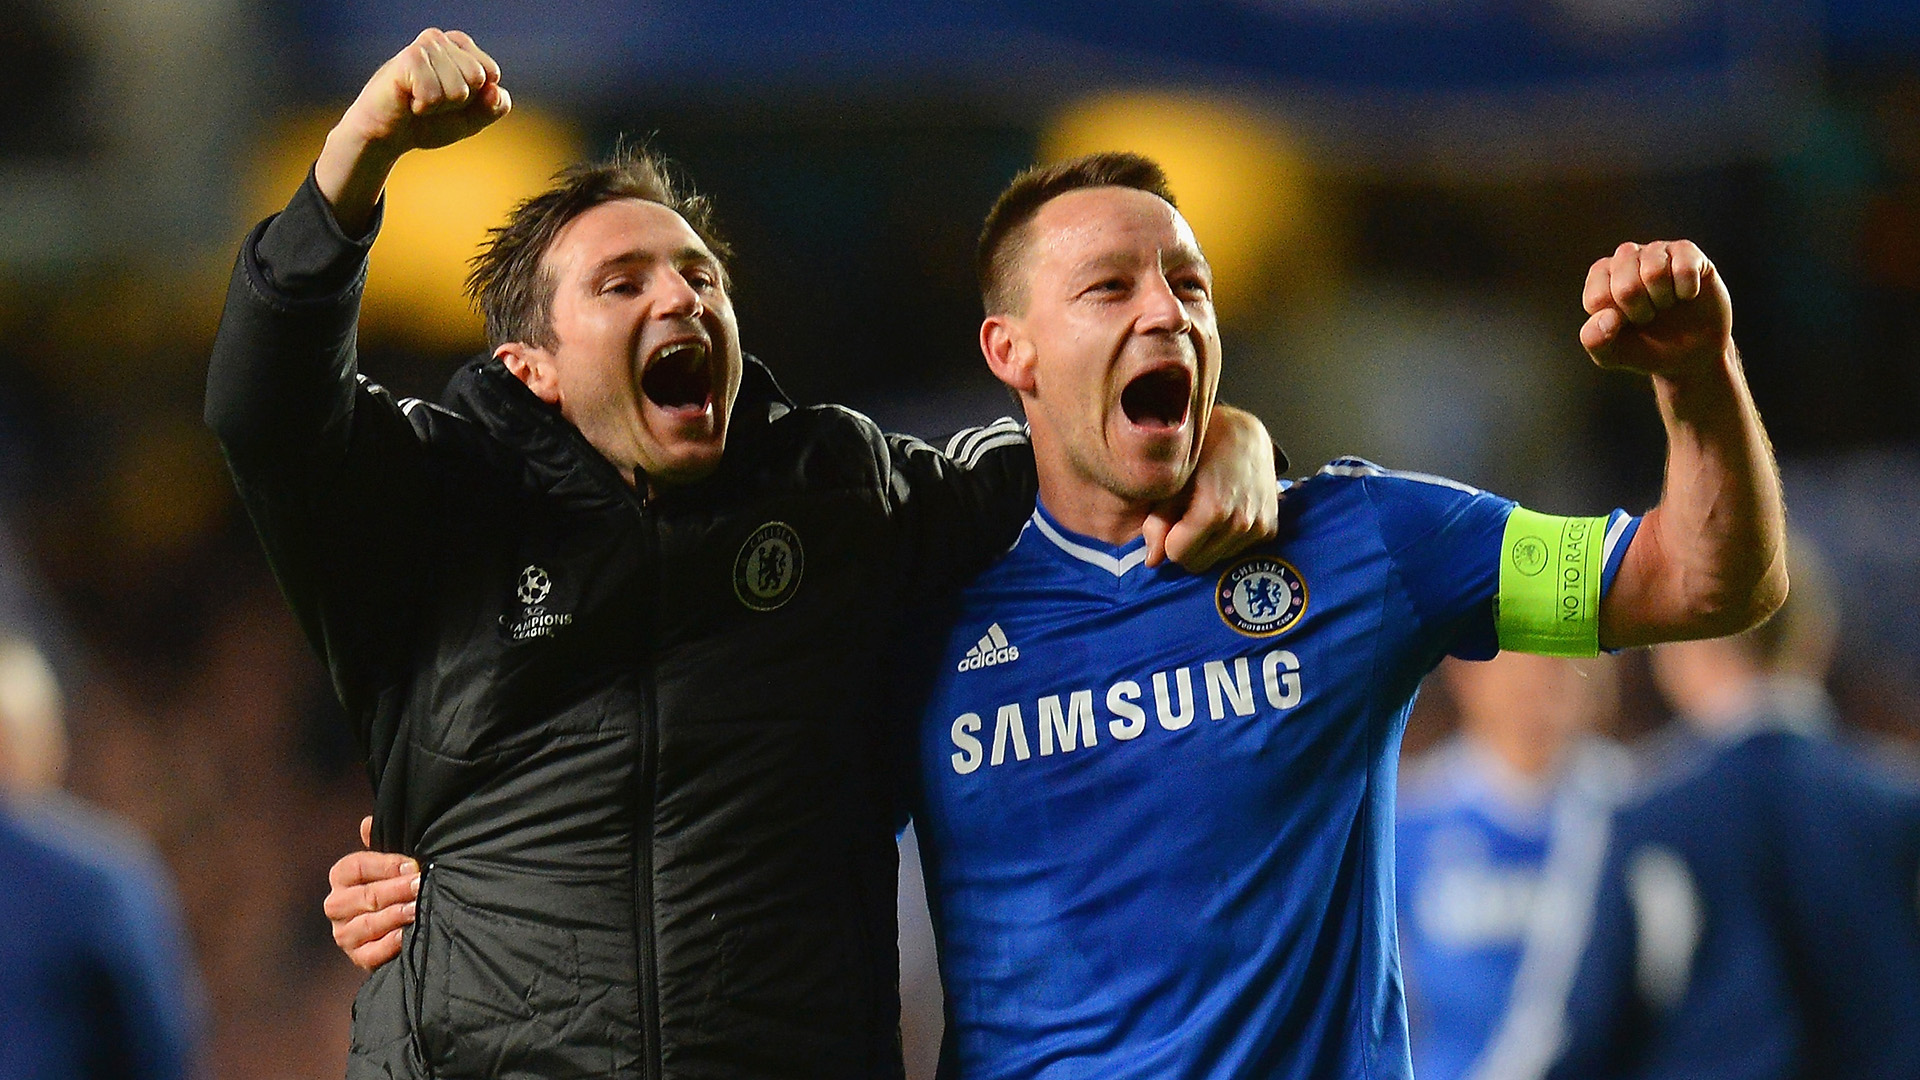 'I always saw Terry as a manager more than Lampard' - former Chelsea striker Hasselbaink